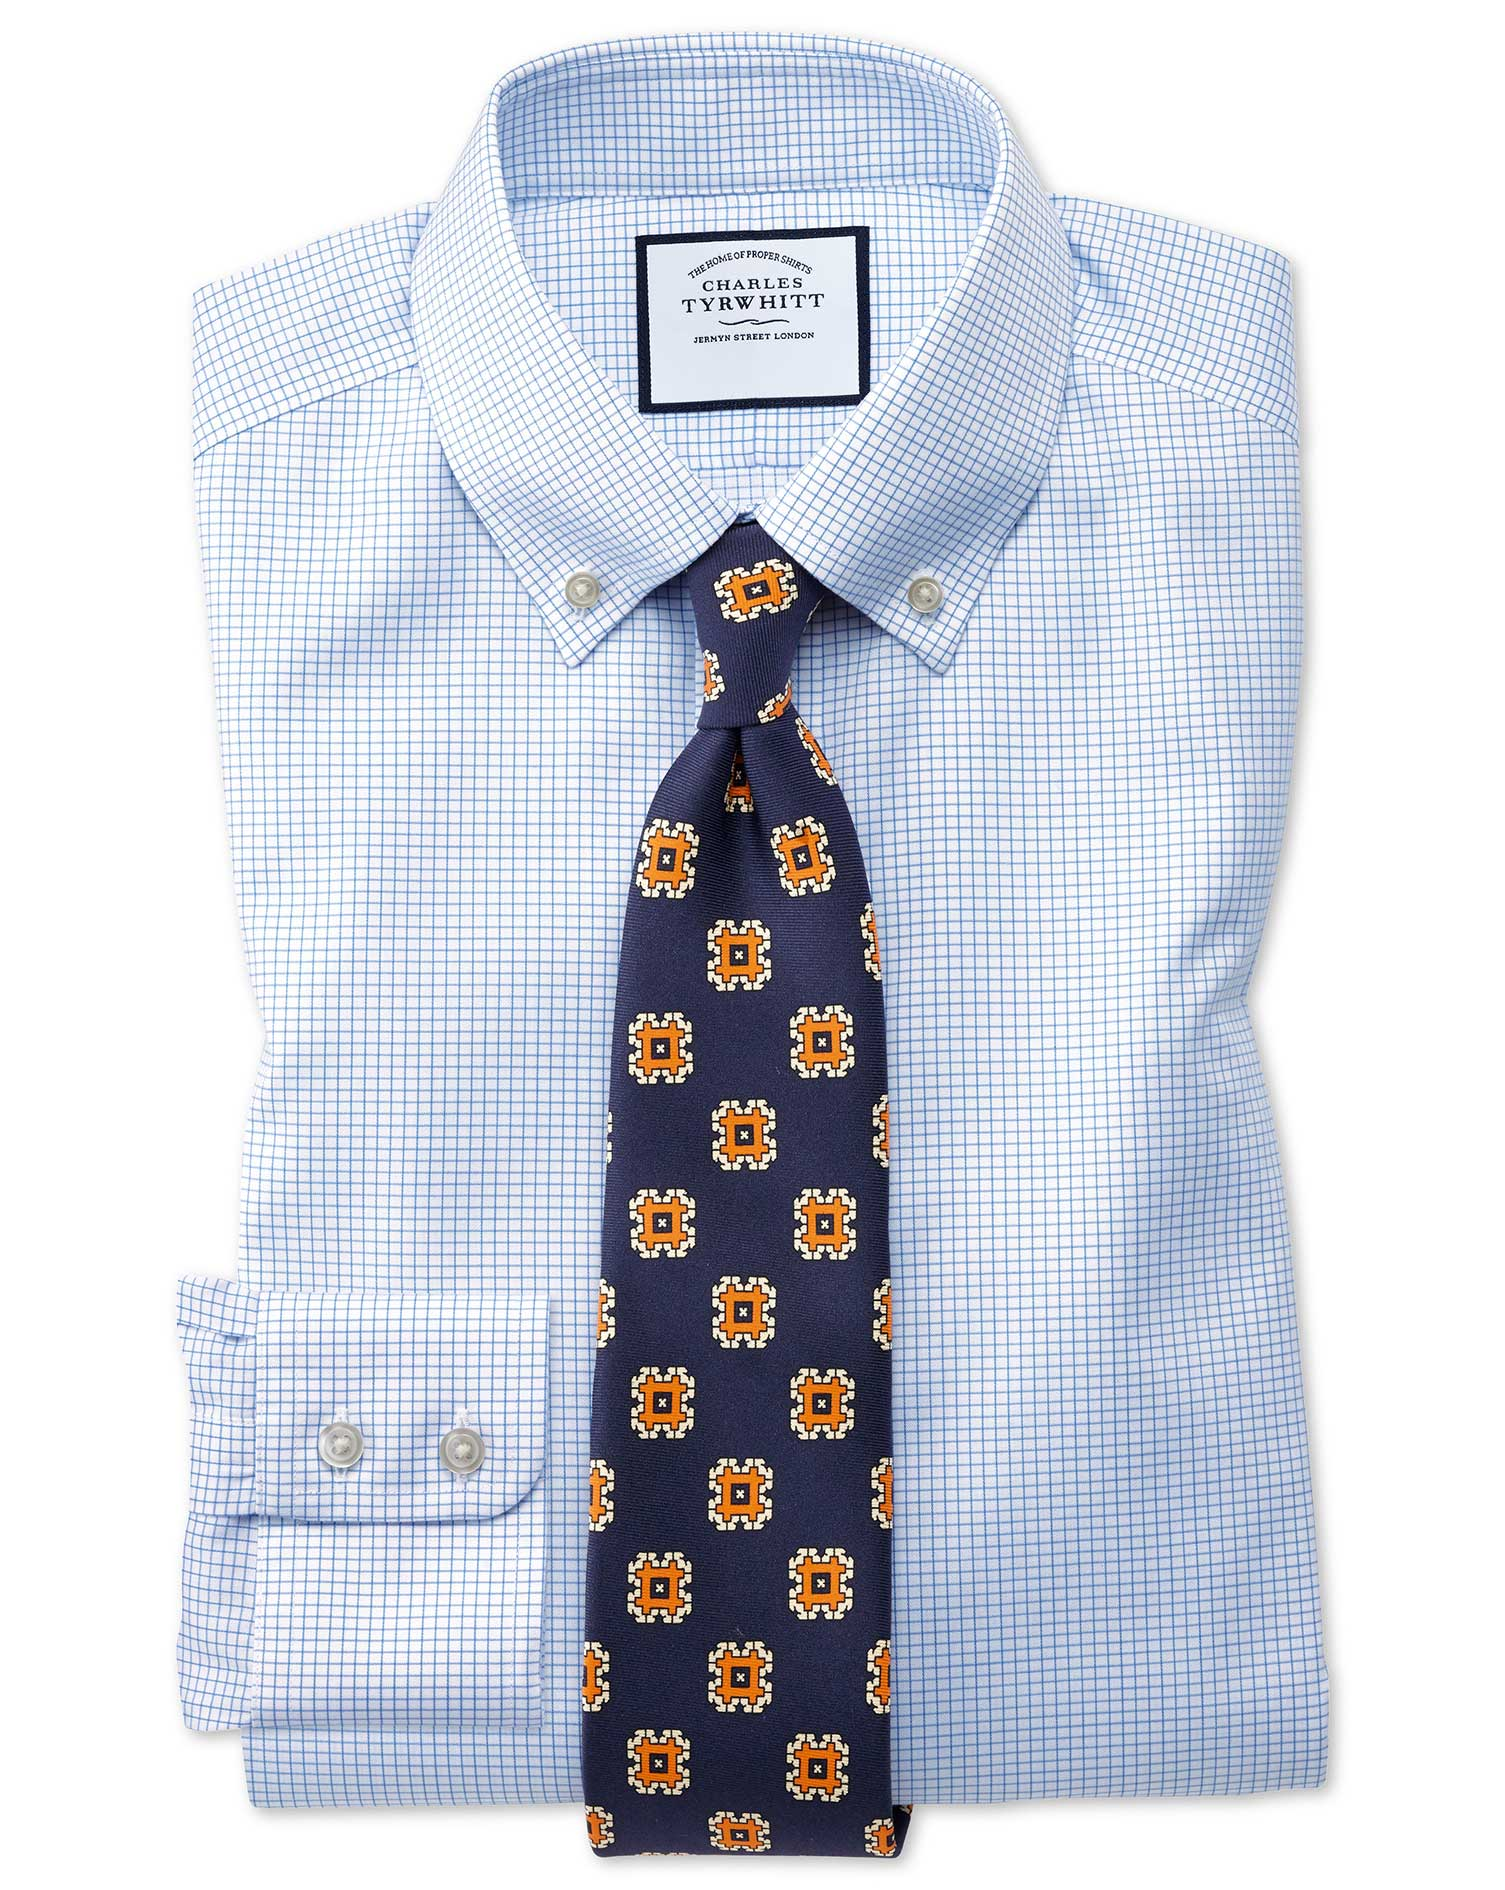 Classic Fit Button-Down Non-Iron Twill Mini Grid Check Sky Blue Cotton Formal Shirt Single Cuff Size